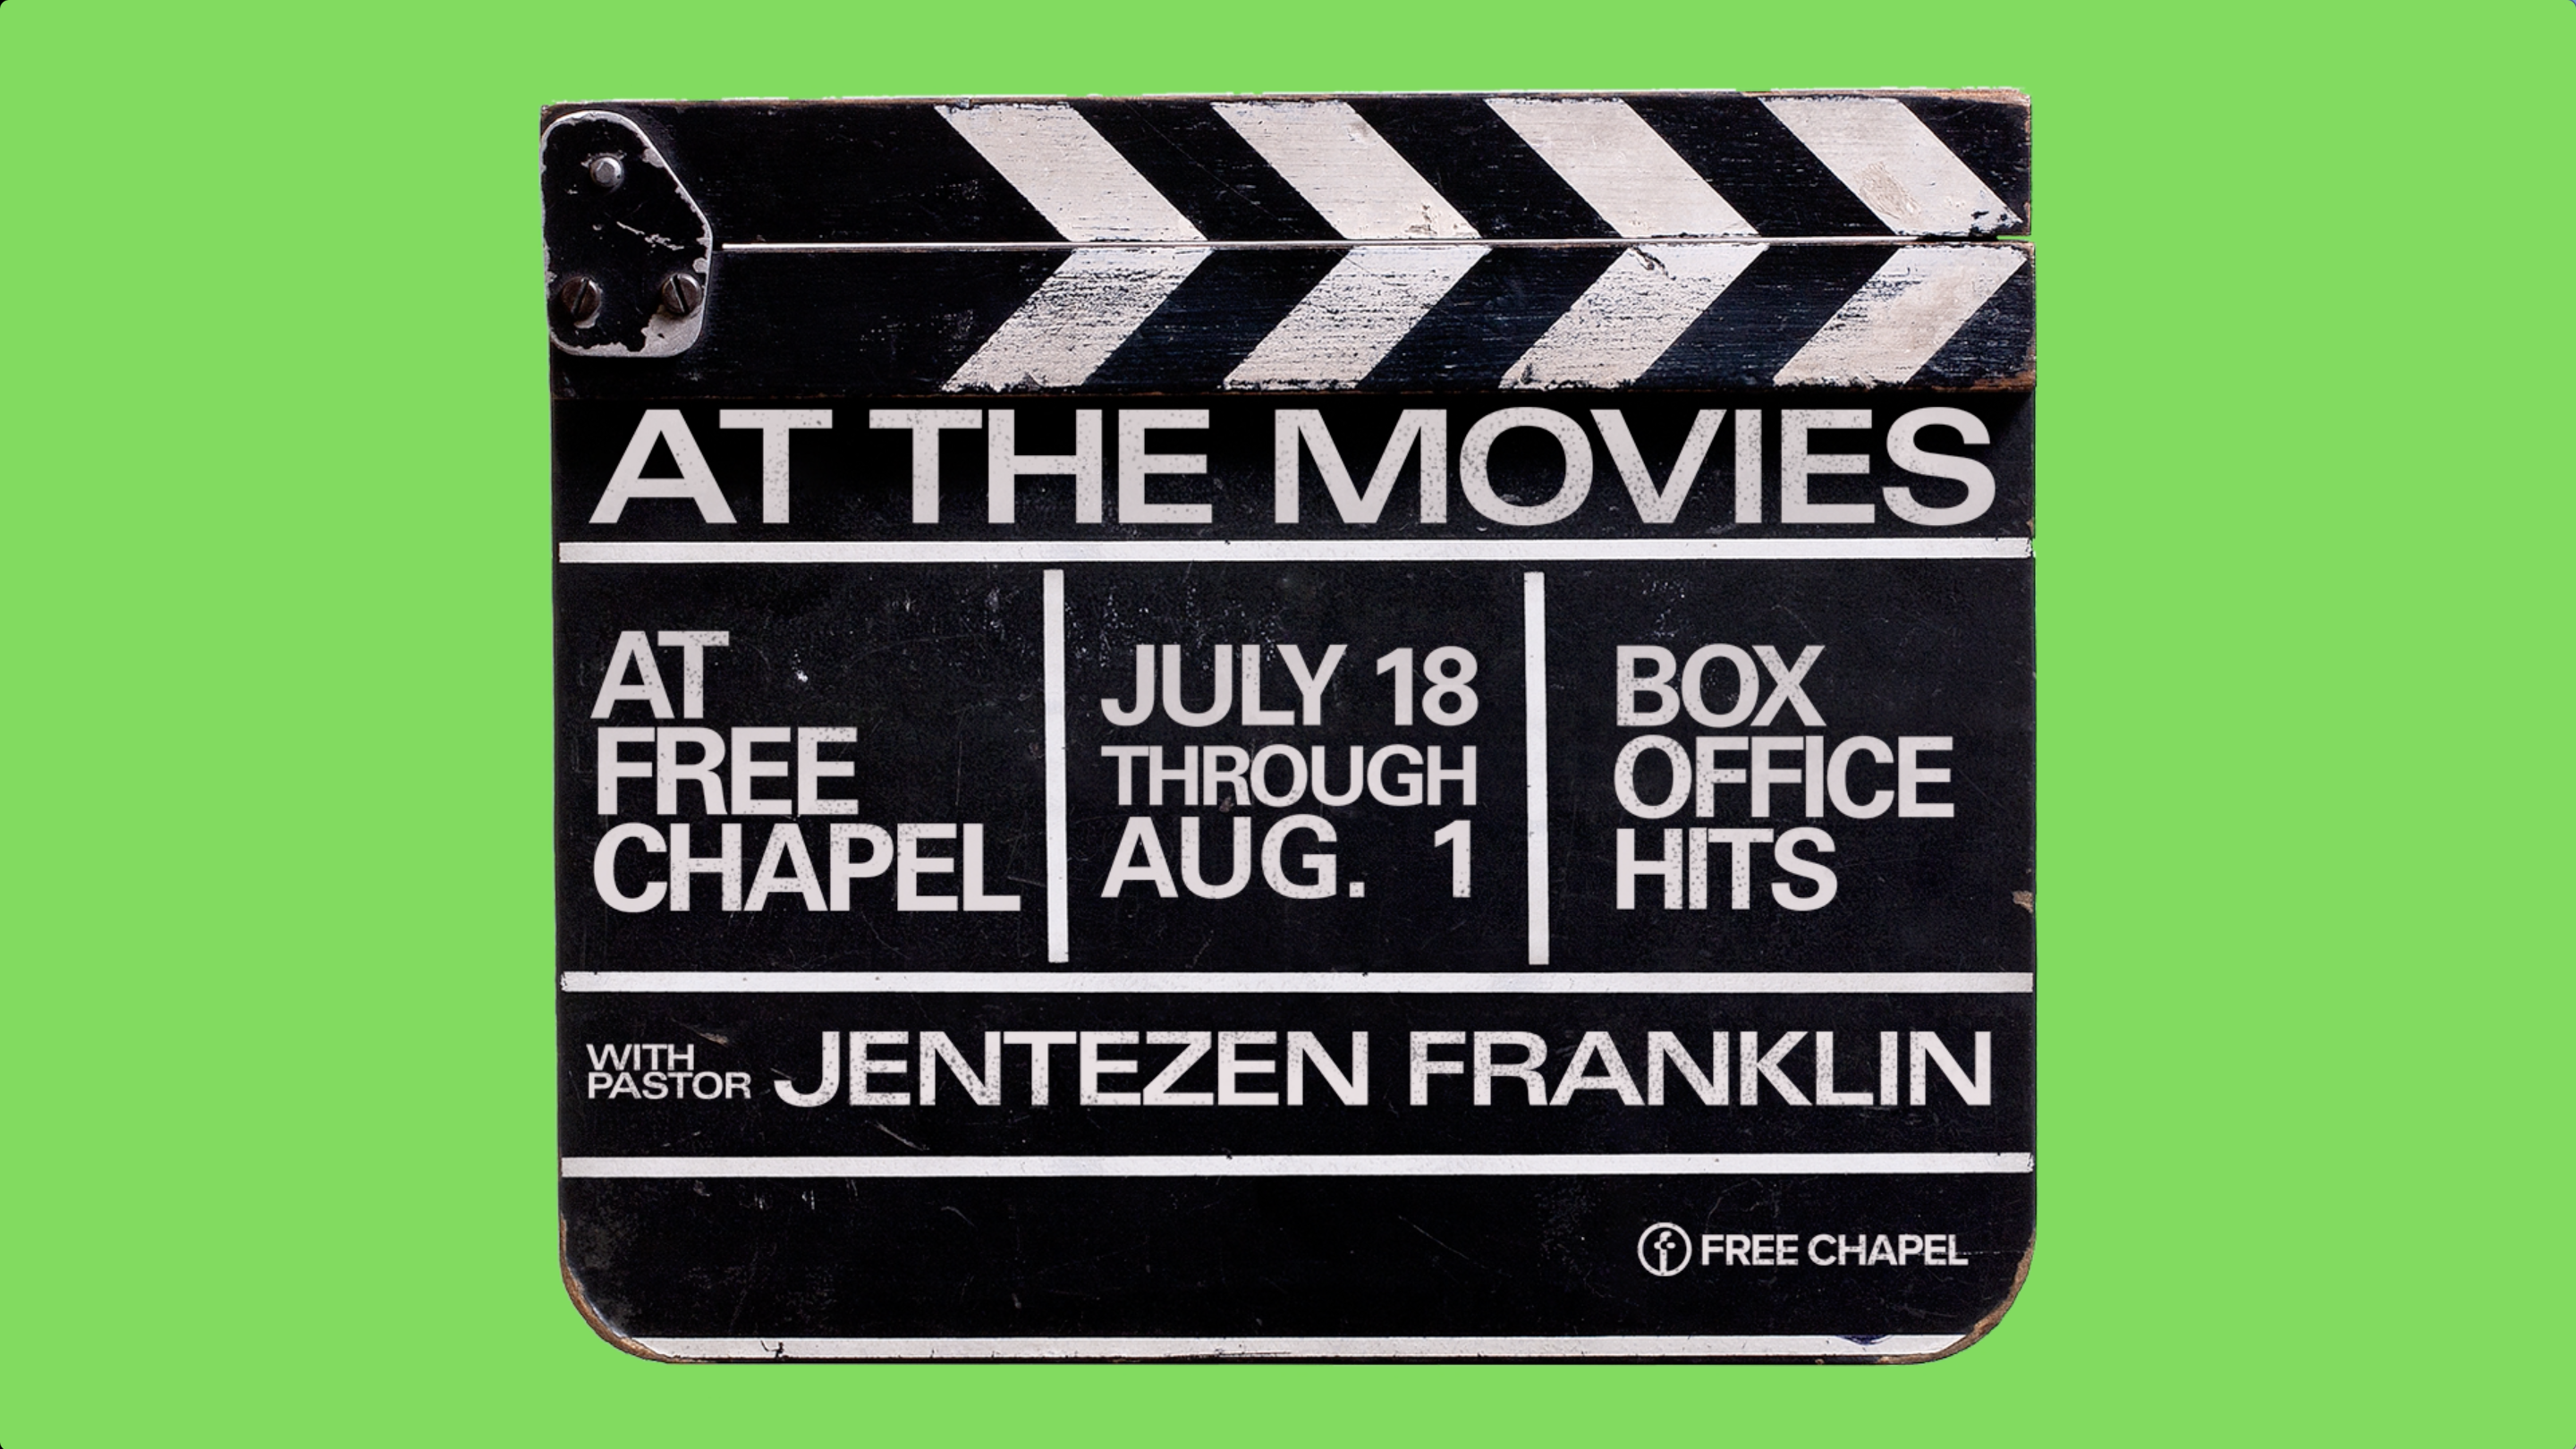 At The Movies at the Gainesville campus